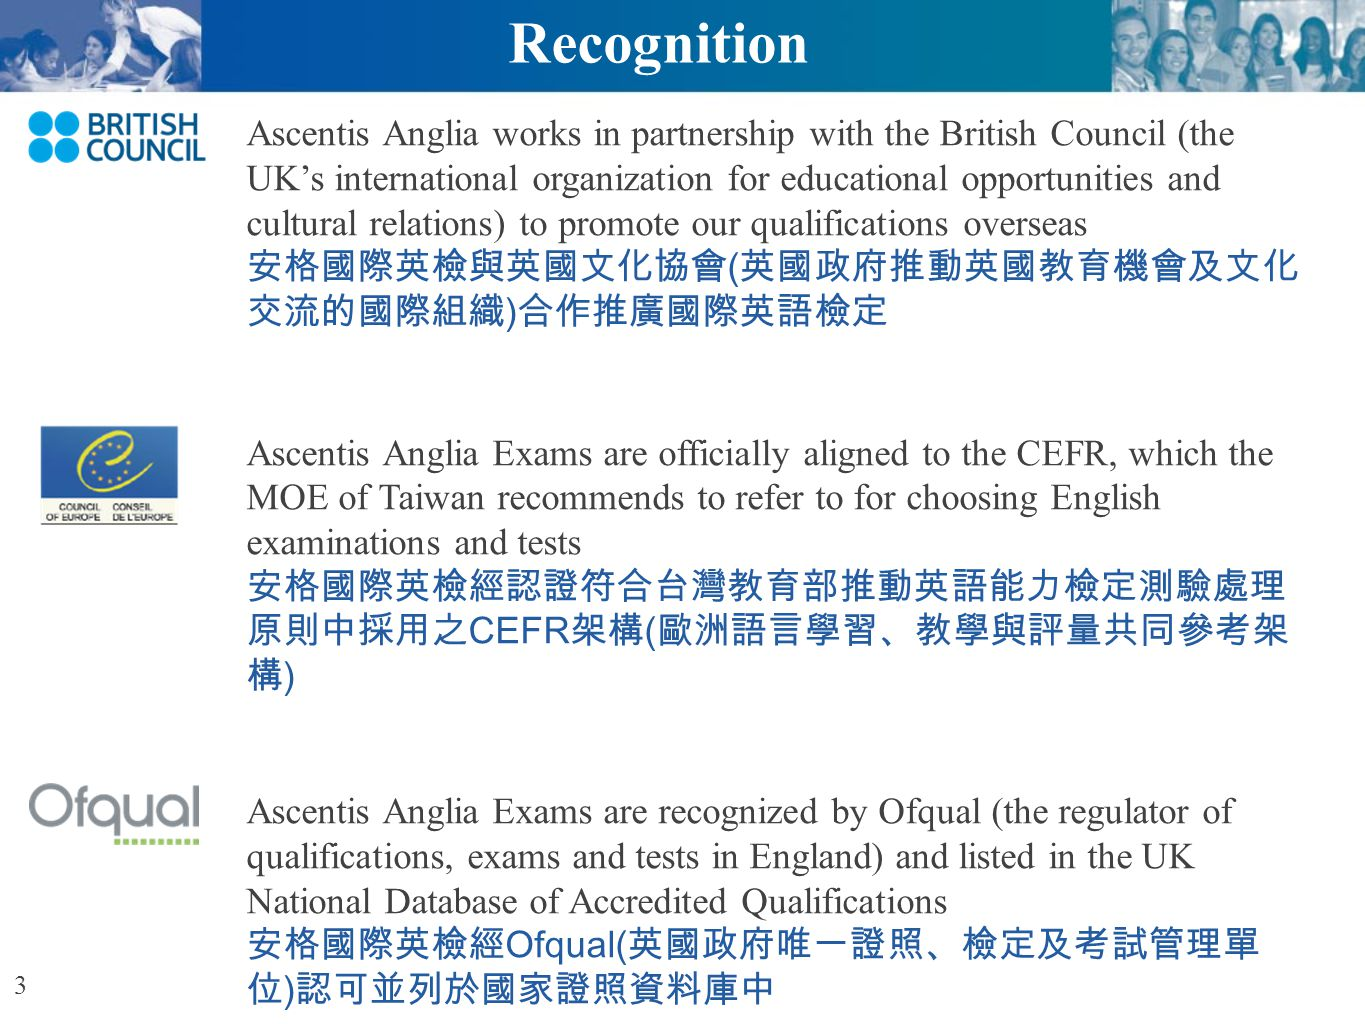 Ascentis Anglia ESOL International Examinations Ascentis Anglia Exams are recognized by UCAS (University & Colleges Admissions Service) and institutions in English speaking countries such as the UK, US, Australia and New Zealand for the use of entrance applications 安格國際英檢經 UCAS( 英國大學院校考試入學委員會 ) 及 英國、美國、澳洲及紐西蘭等英語系國家學校廣泛採認作 為入學申請之用 Ascentis Anglia is a member of EALTA (European Association for Language Testing and Assessment ) 安格國際英檢為 EALTA( 歐洲語言考試及評量協會 ) 會員 4 Recognition